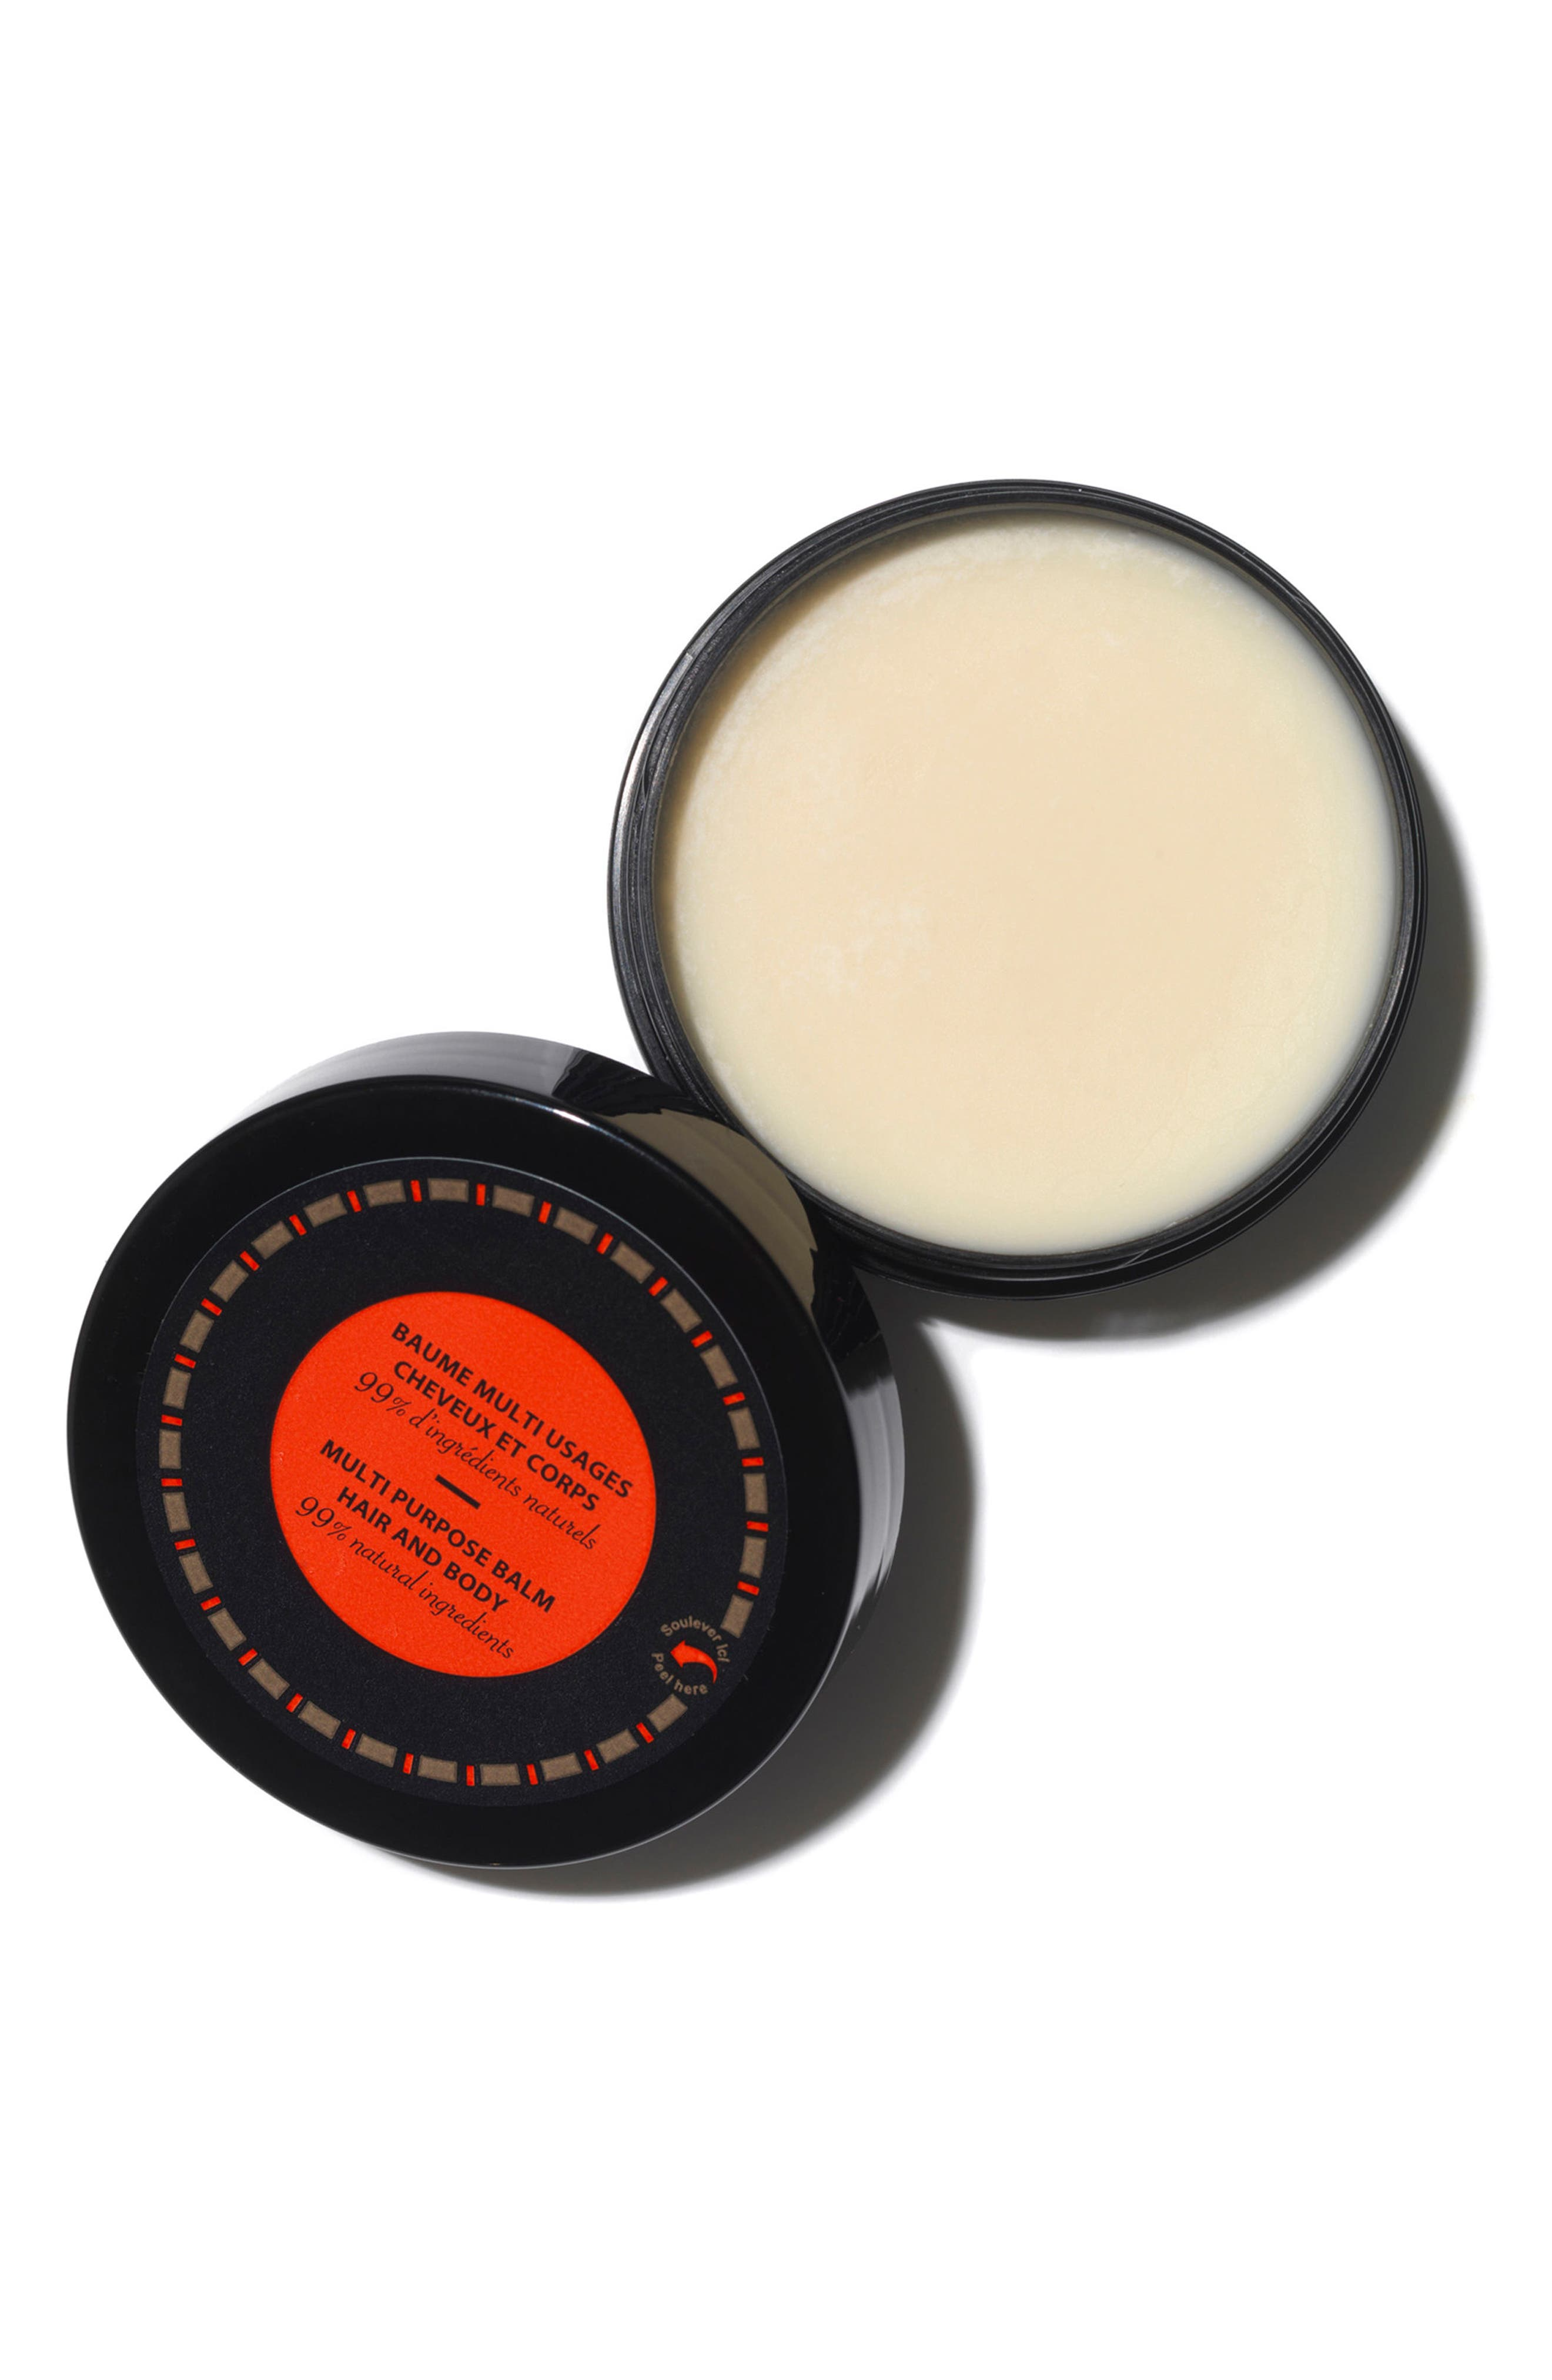 SPACE.NK.apothecary Christophe Robin Intense Regenerating Balm with Rare Prickly Pear Oil,                             Alternate thumbnail 3, color,                             No Color